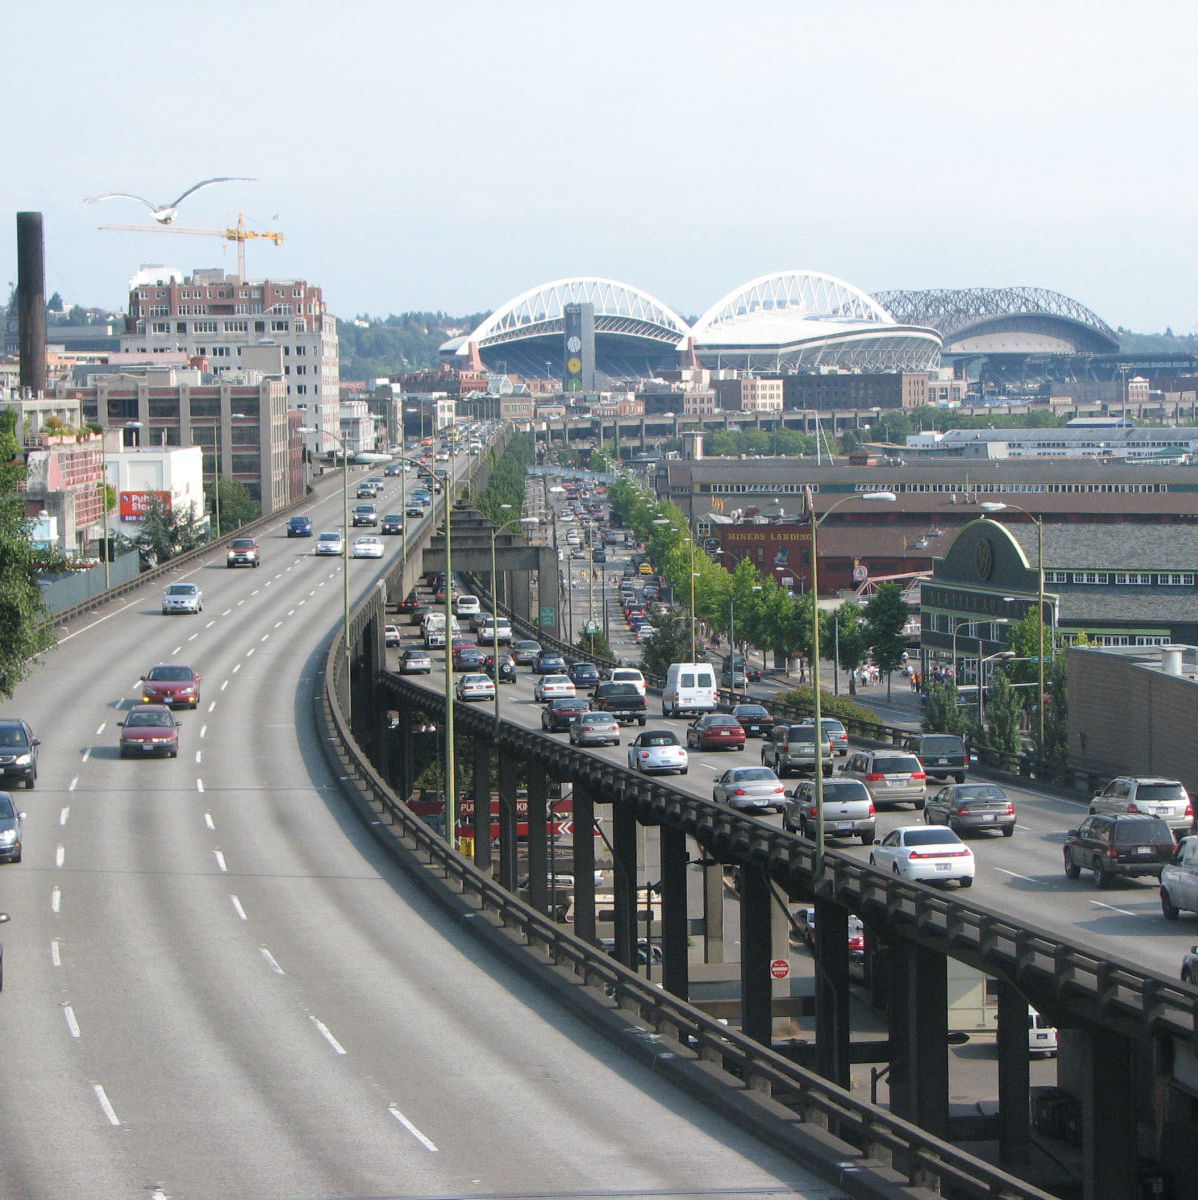 The alaskan way viaduct skapl3